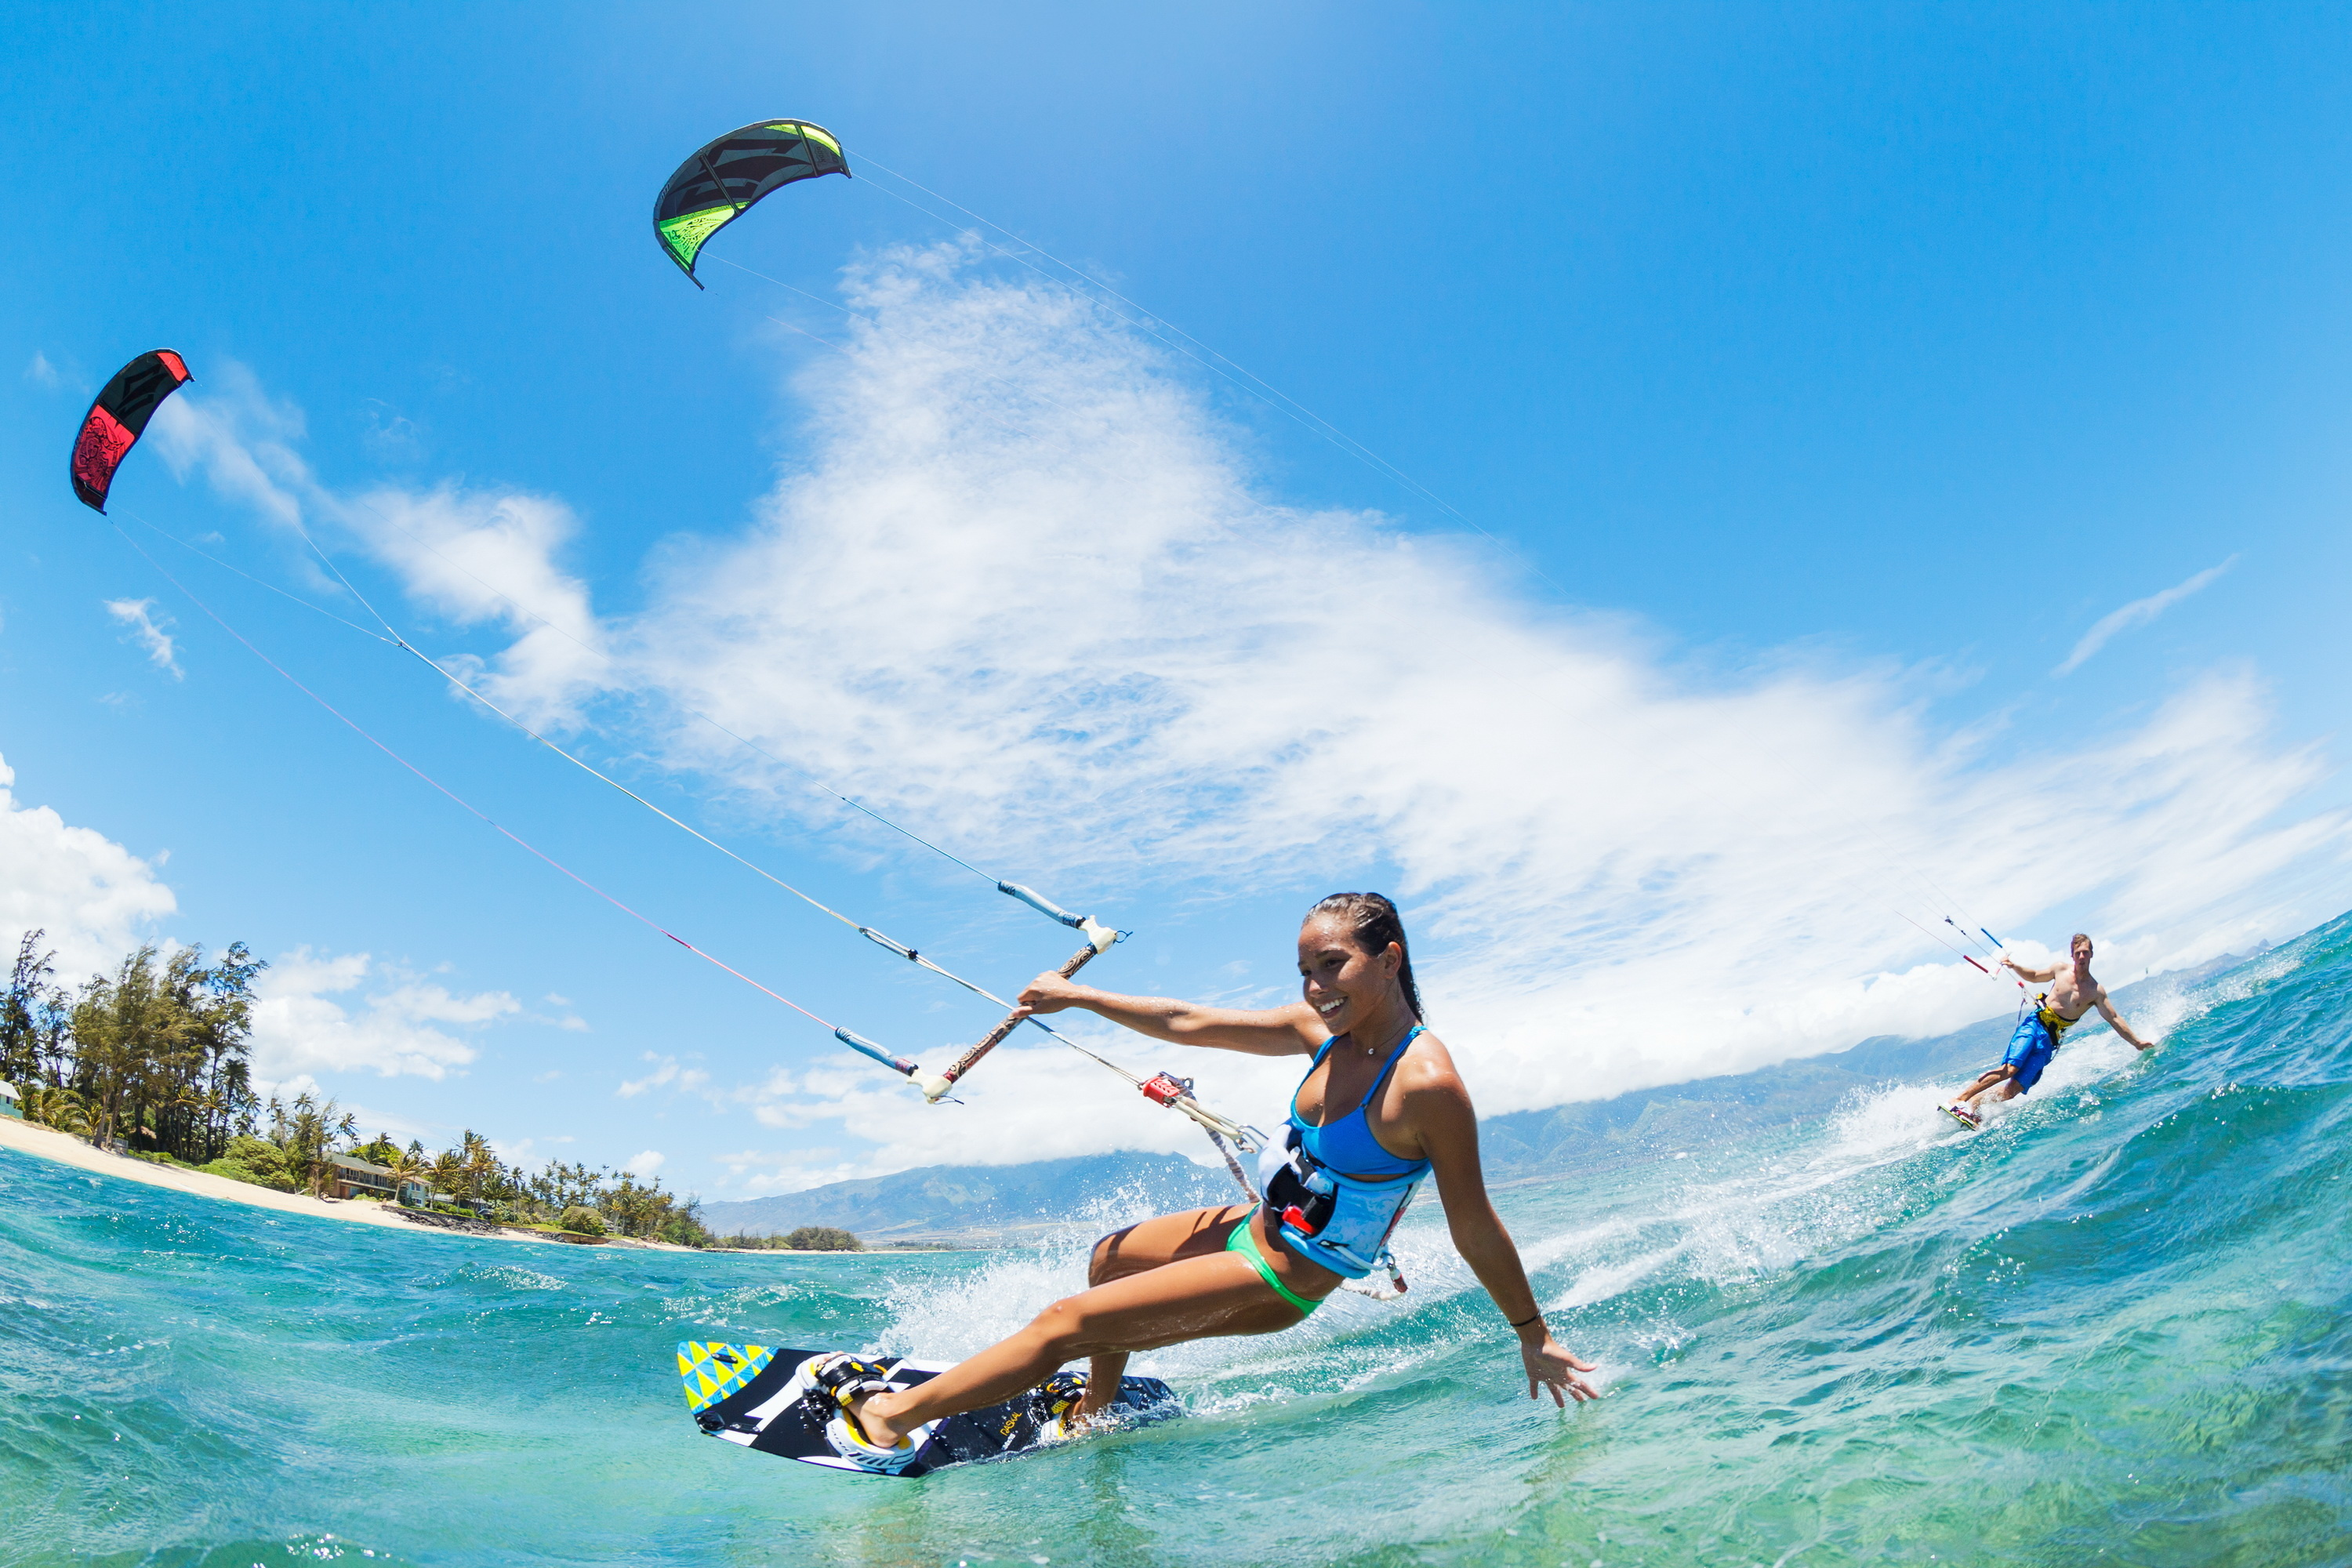 3000x2000 - Kitesurfing Wallpapers 4